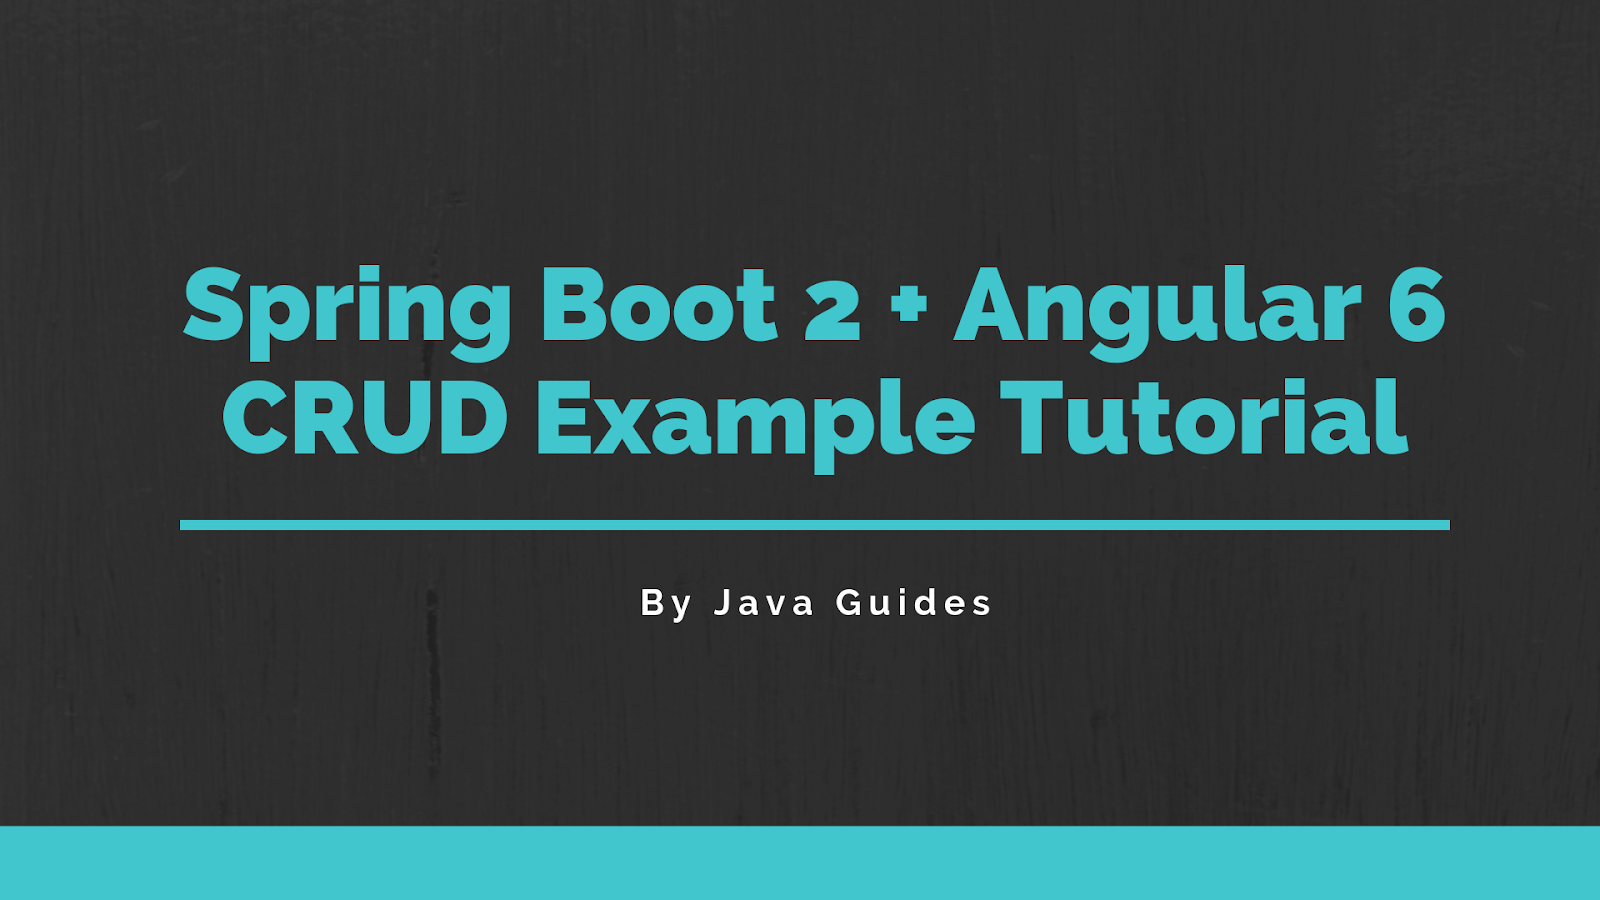 Spring Boot + Angular 6 CRUD Example